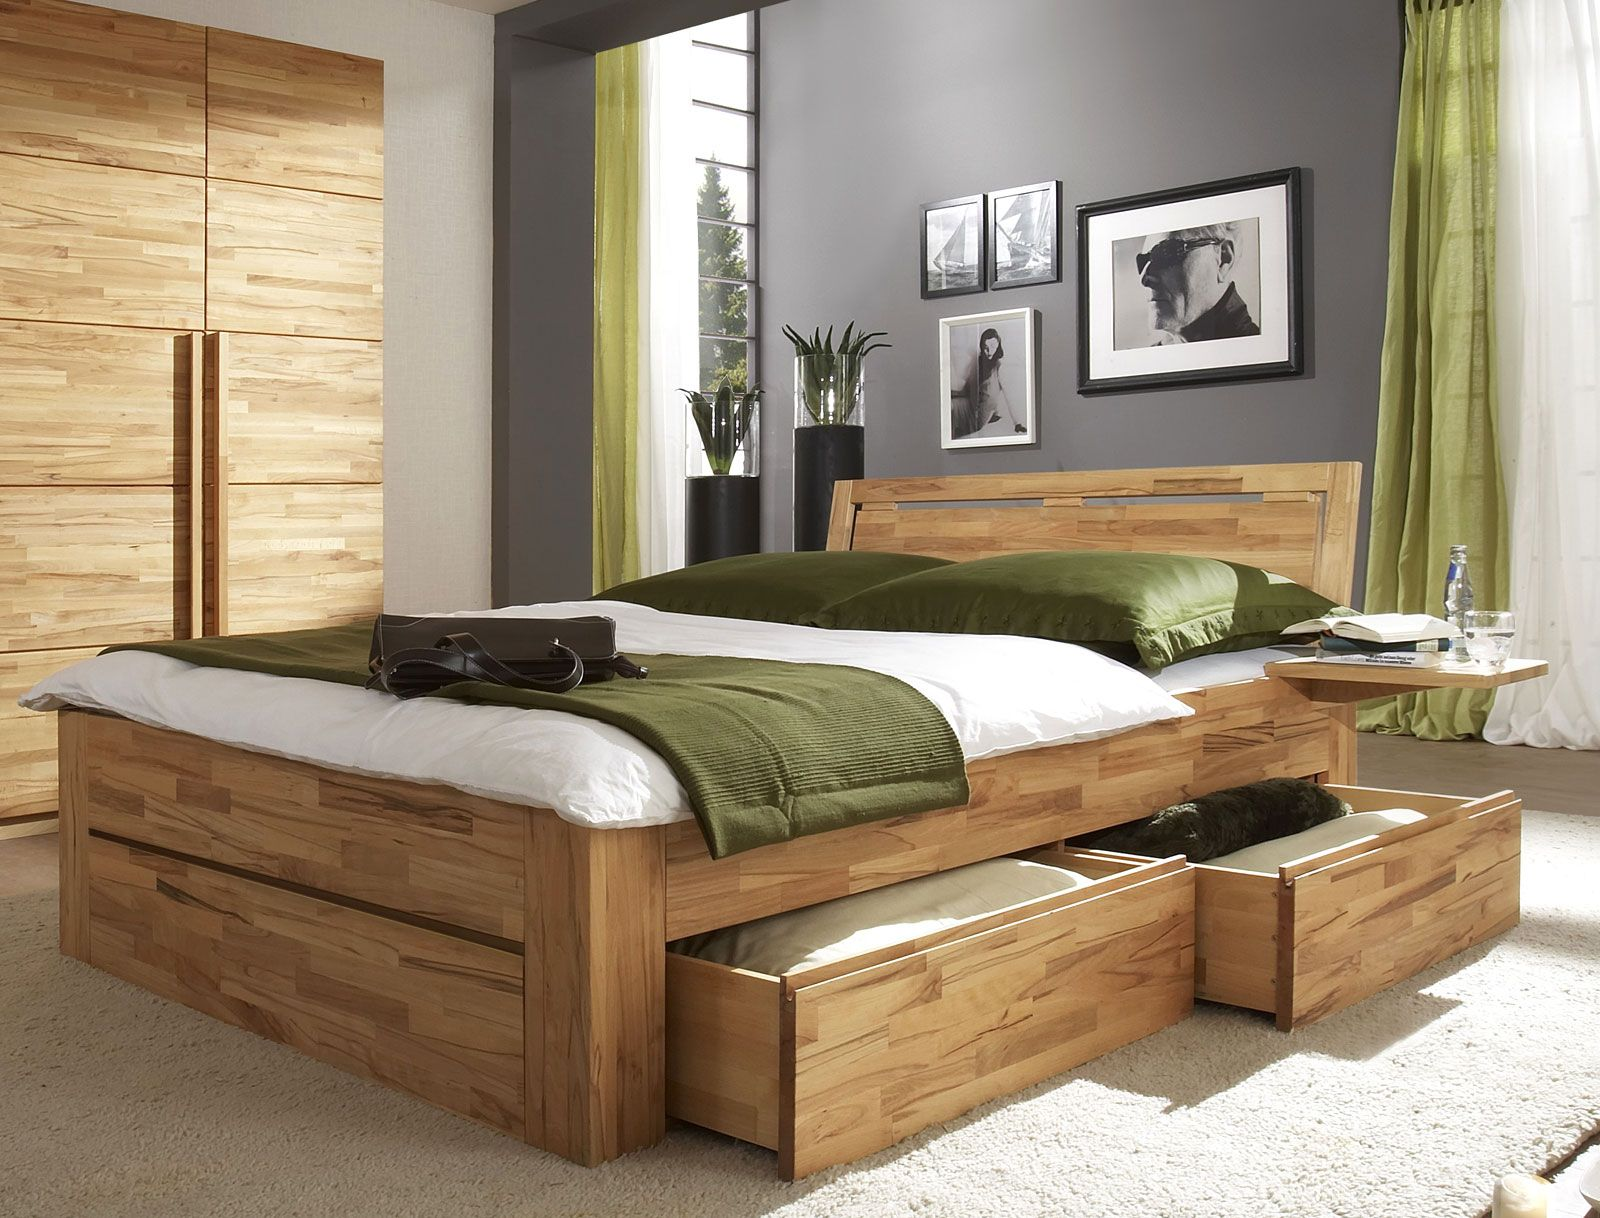 schubkasten doppelbett andalucia platzsparende m bel. Black Bedroom Furniture Sets. Home Design Ideas